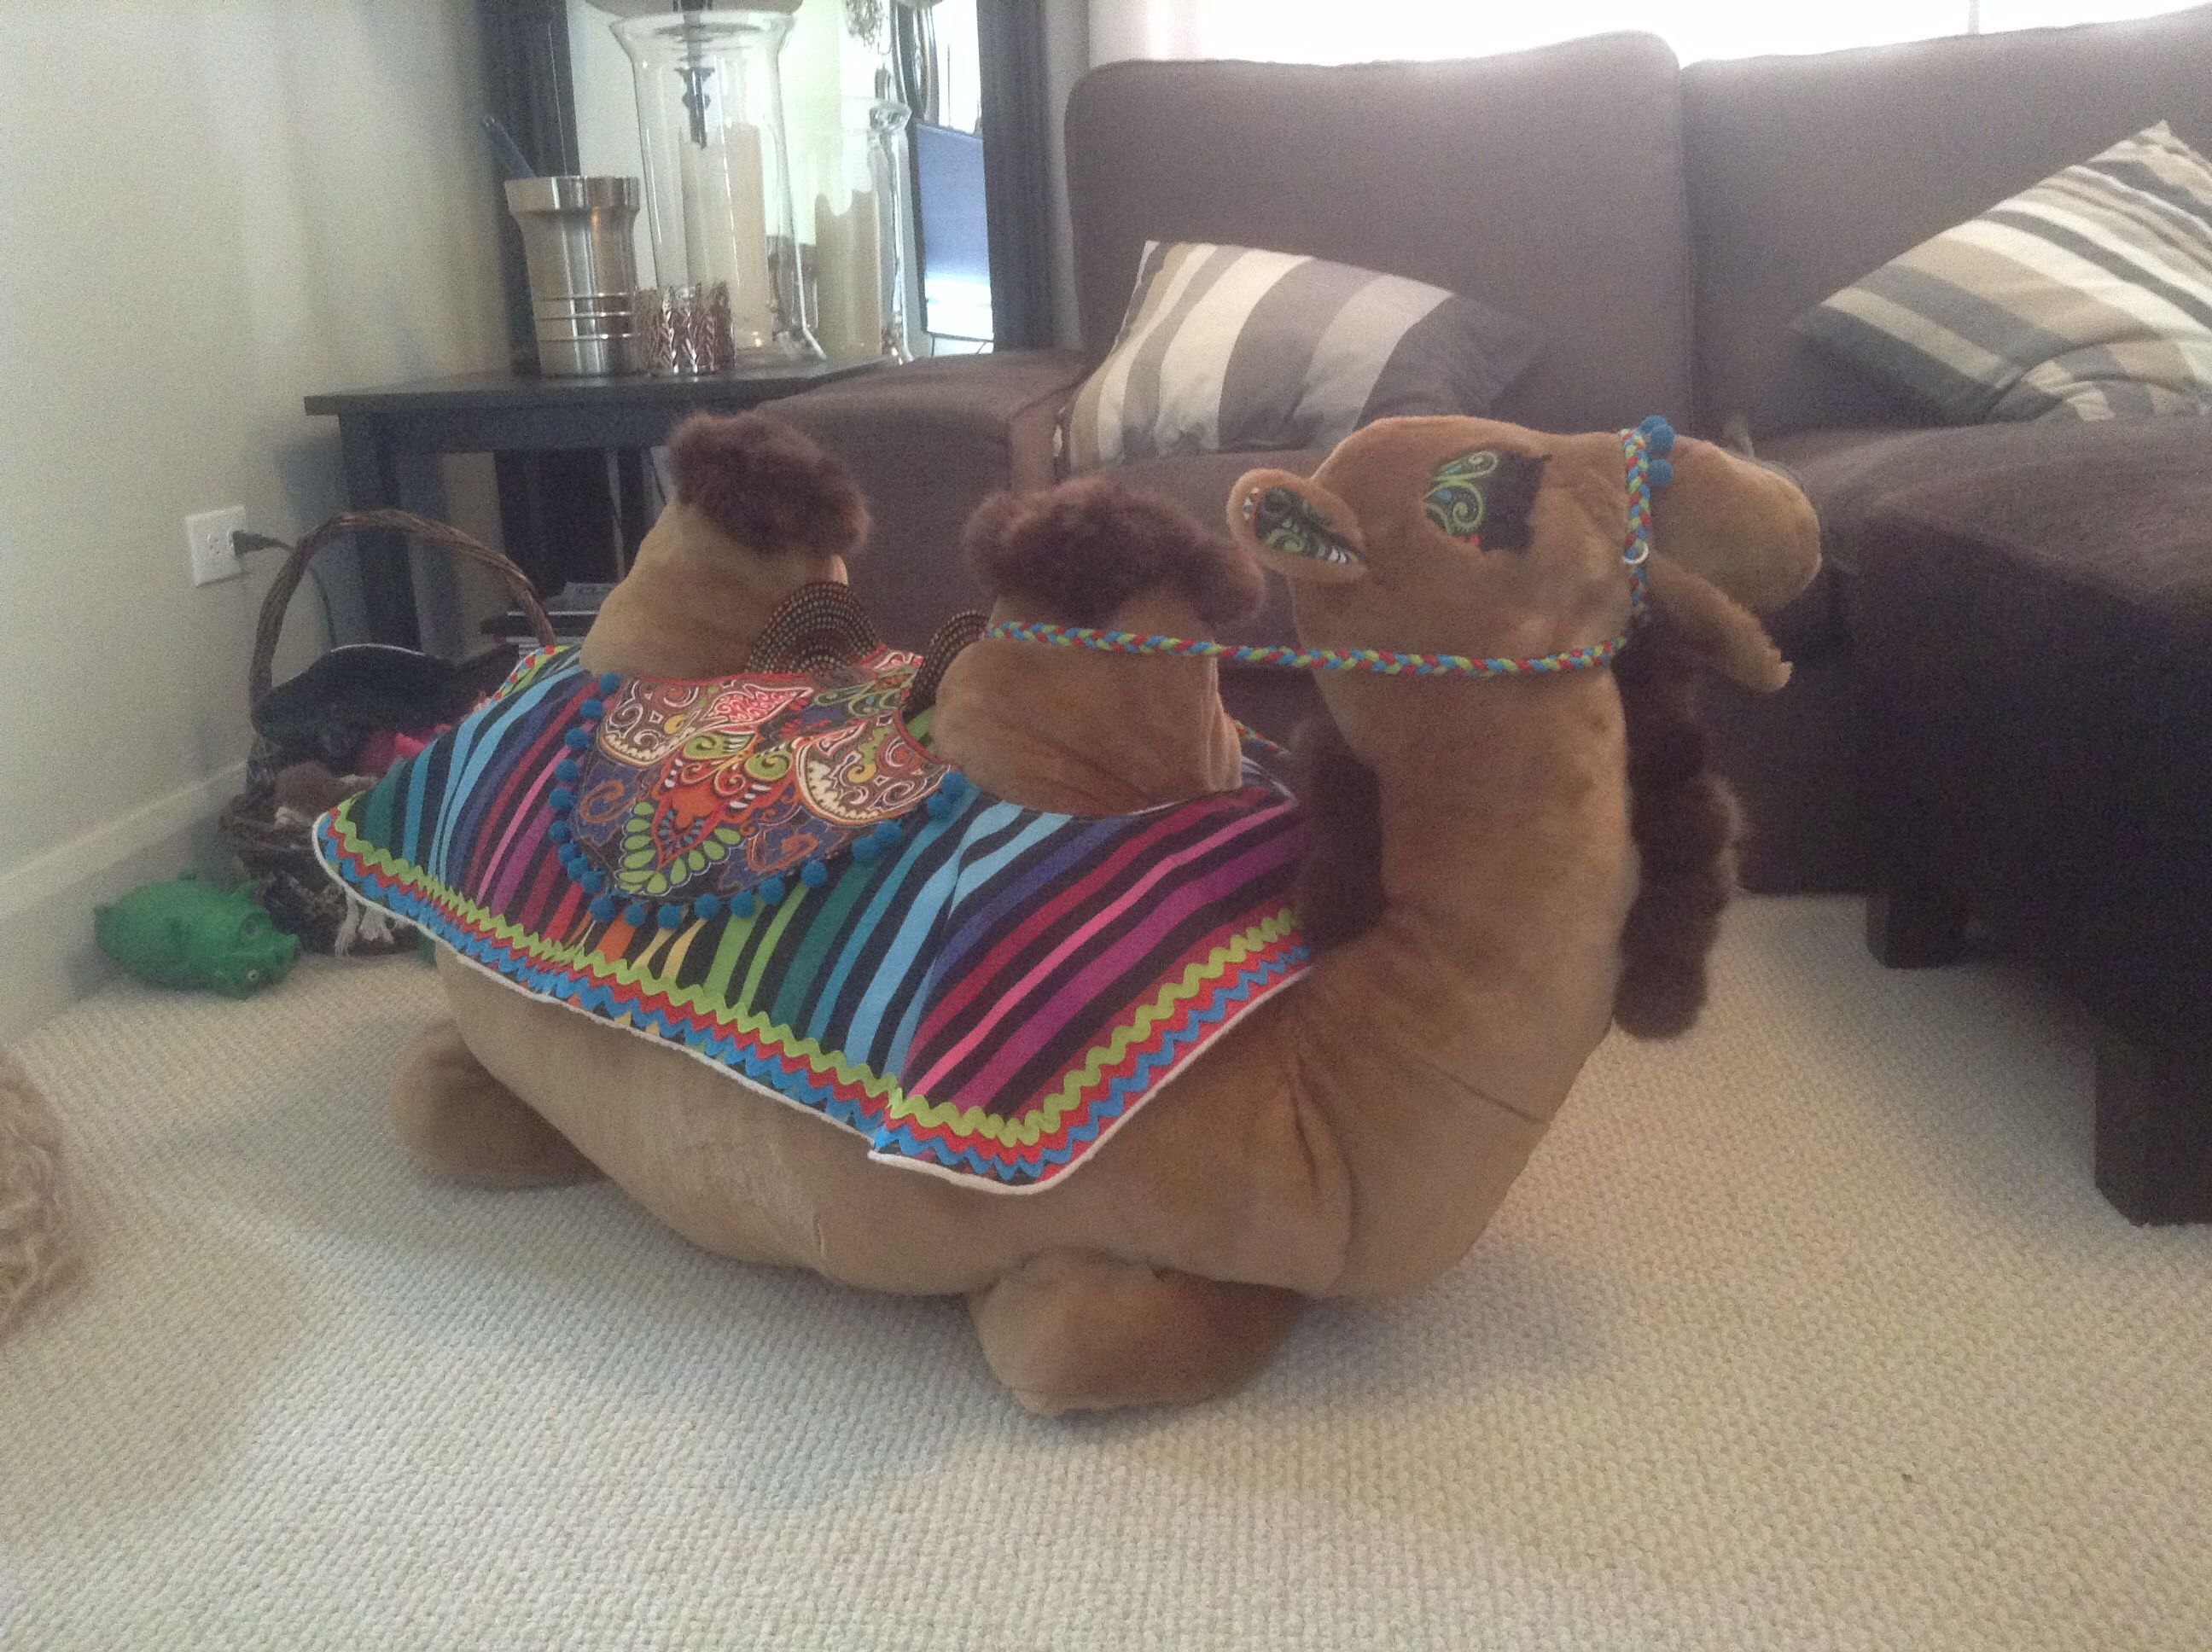 Handmade Stuffed Camel First Birthday Gift For Grandson Lots Of Hours Invested In This Heirloom Toy Fun Fur With Outdoor Fabrics Used Blanket And